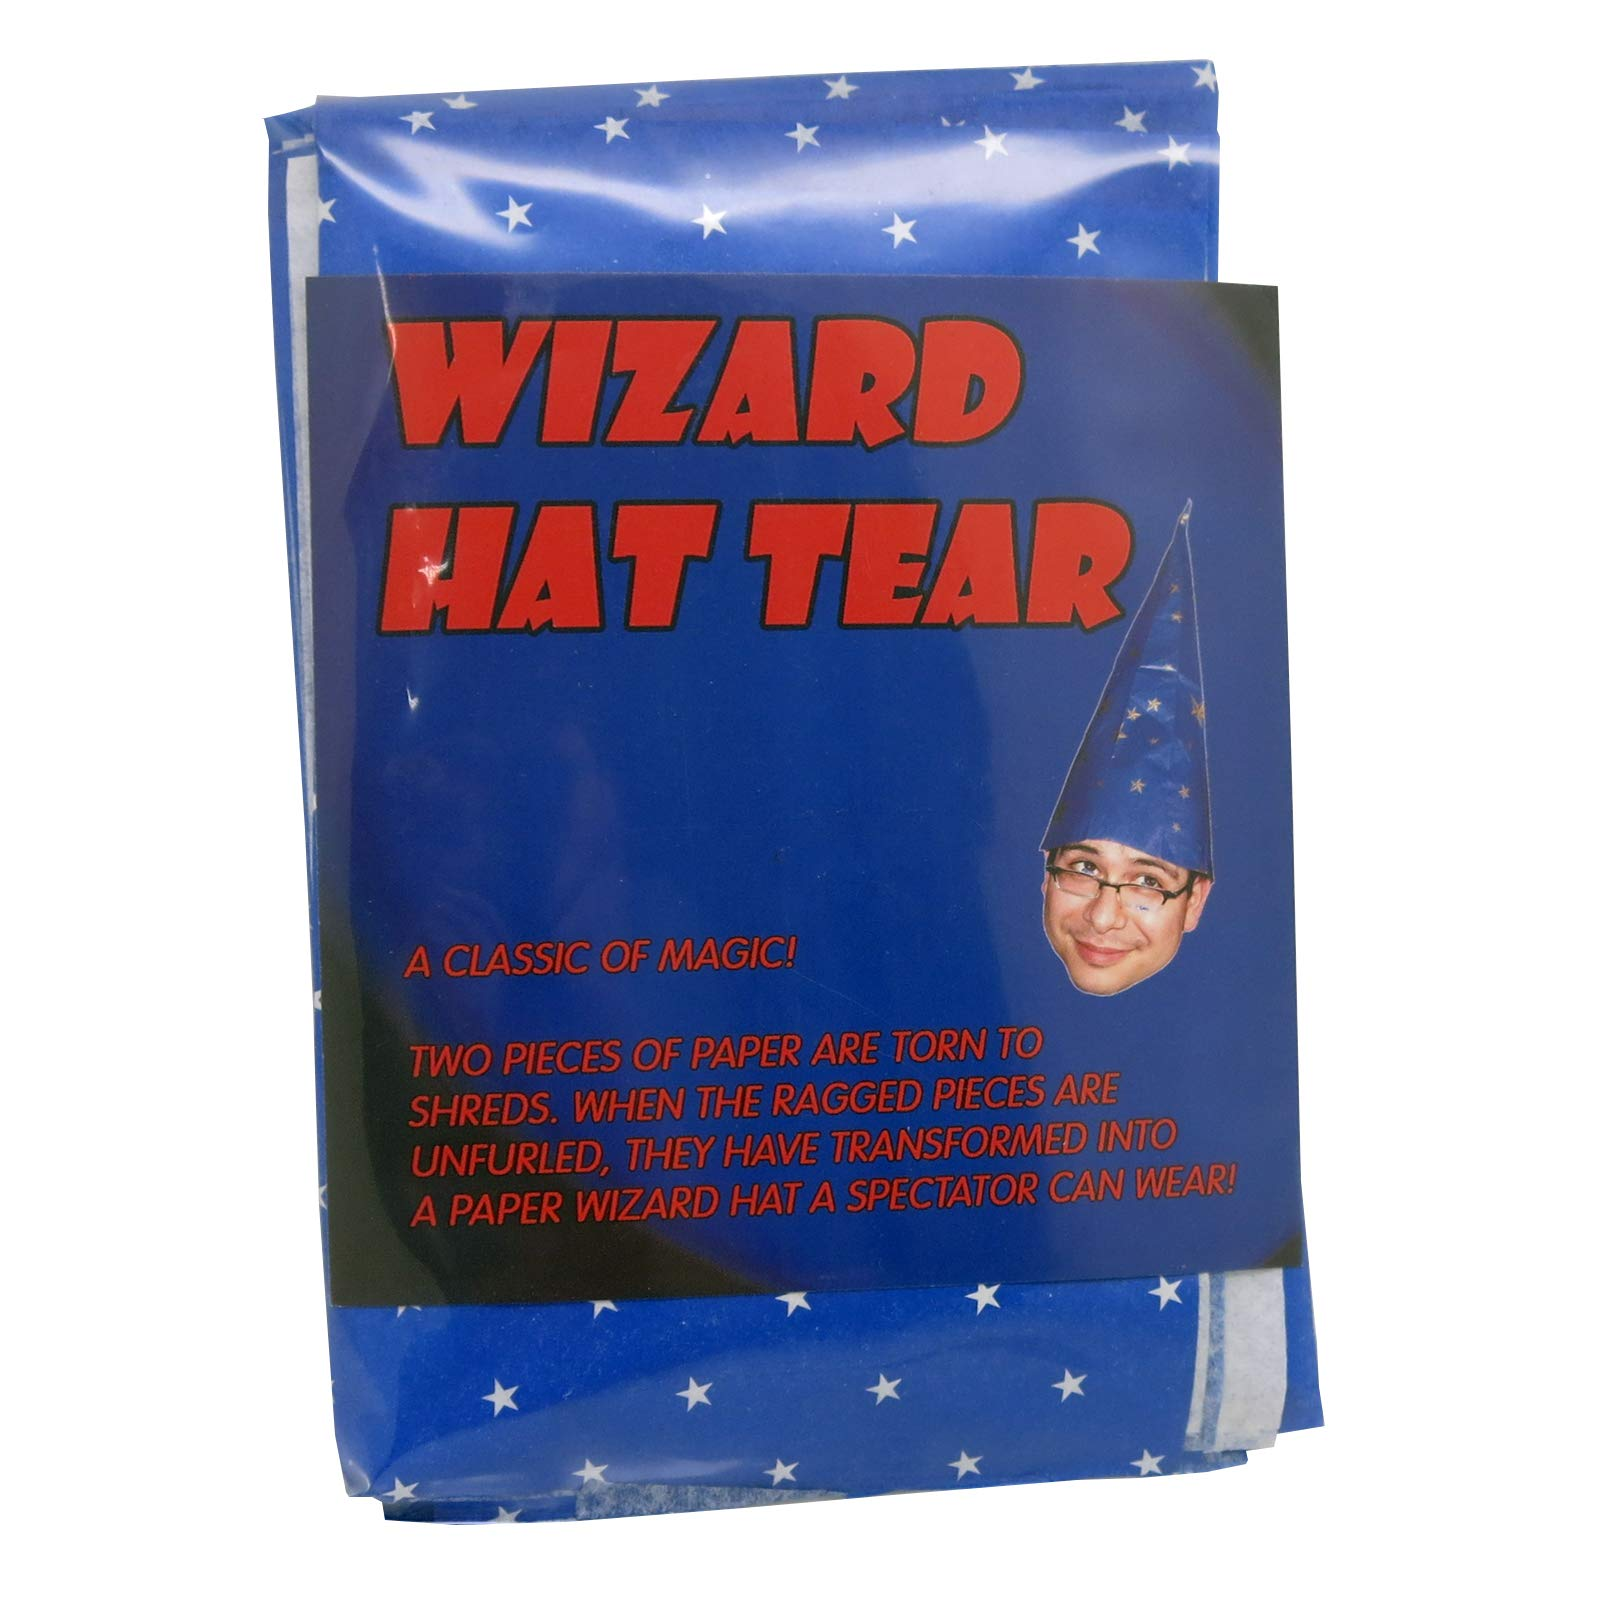 Royal Magic Wizard Hat Tear Trick From A Classic of Magic.